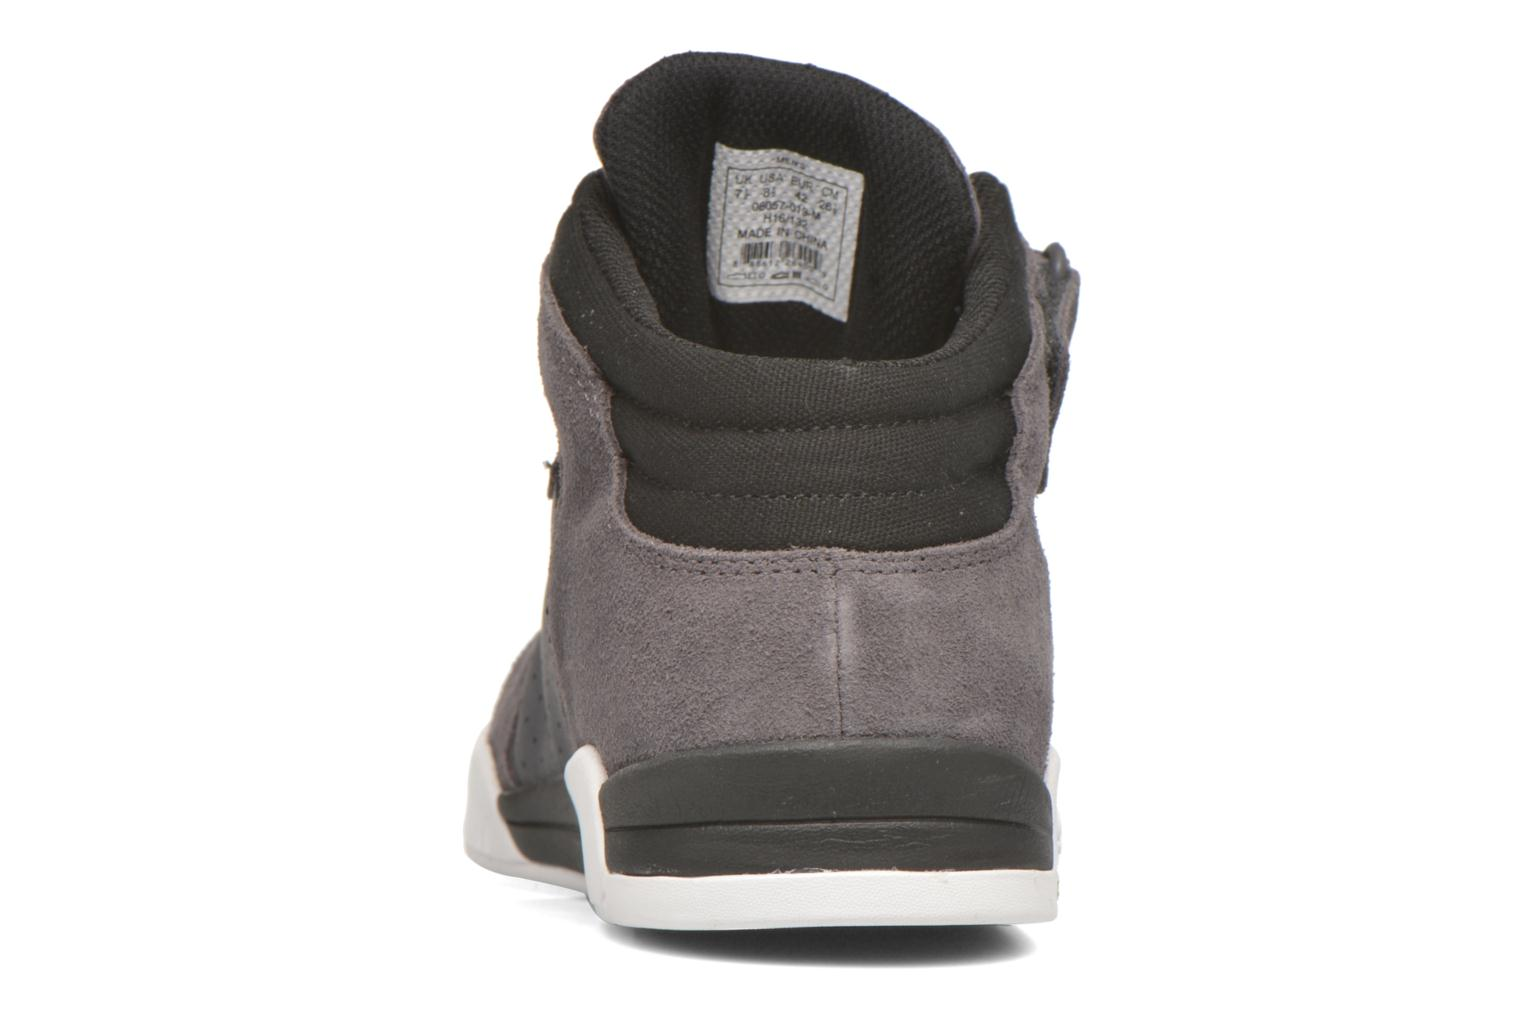 Ellington Strap Dark Grey/Black/White